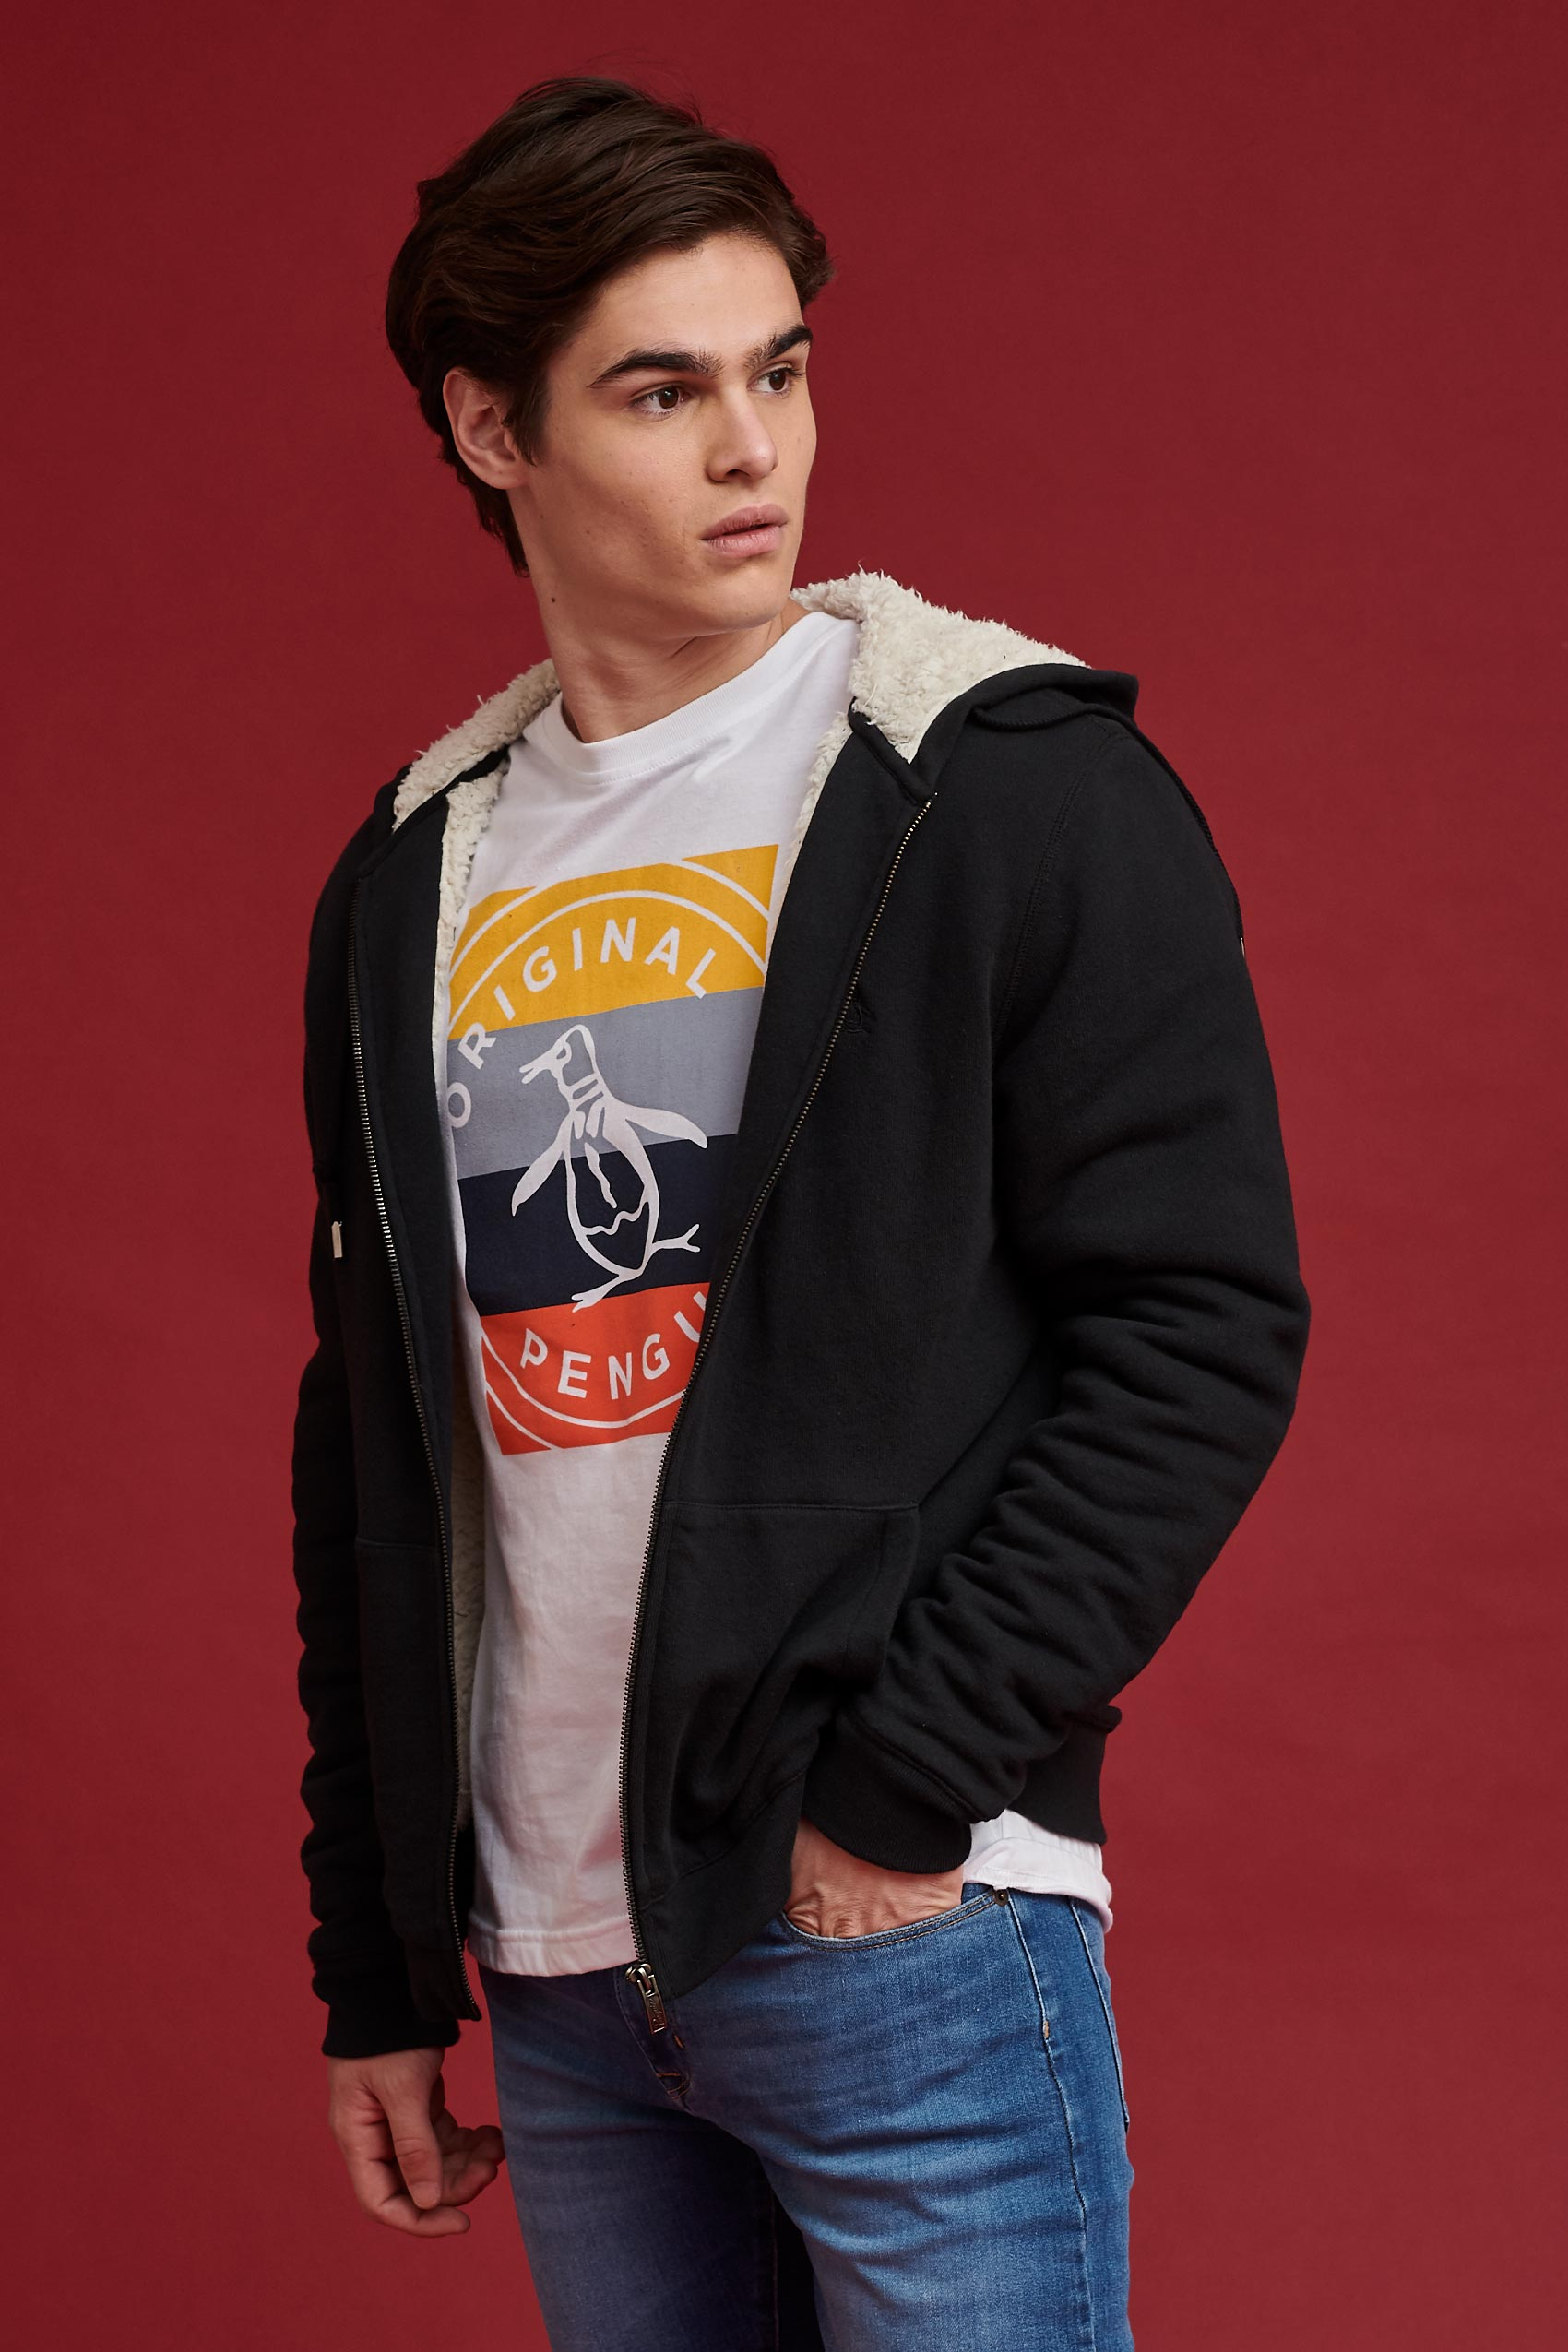 penguin_sherpa-lined-zip-hoodie_00-21-2020__picture-12930